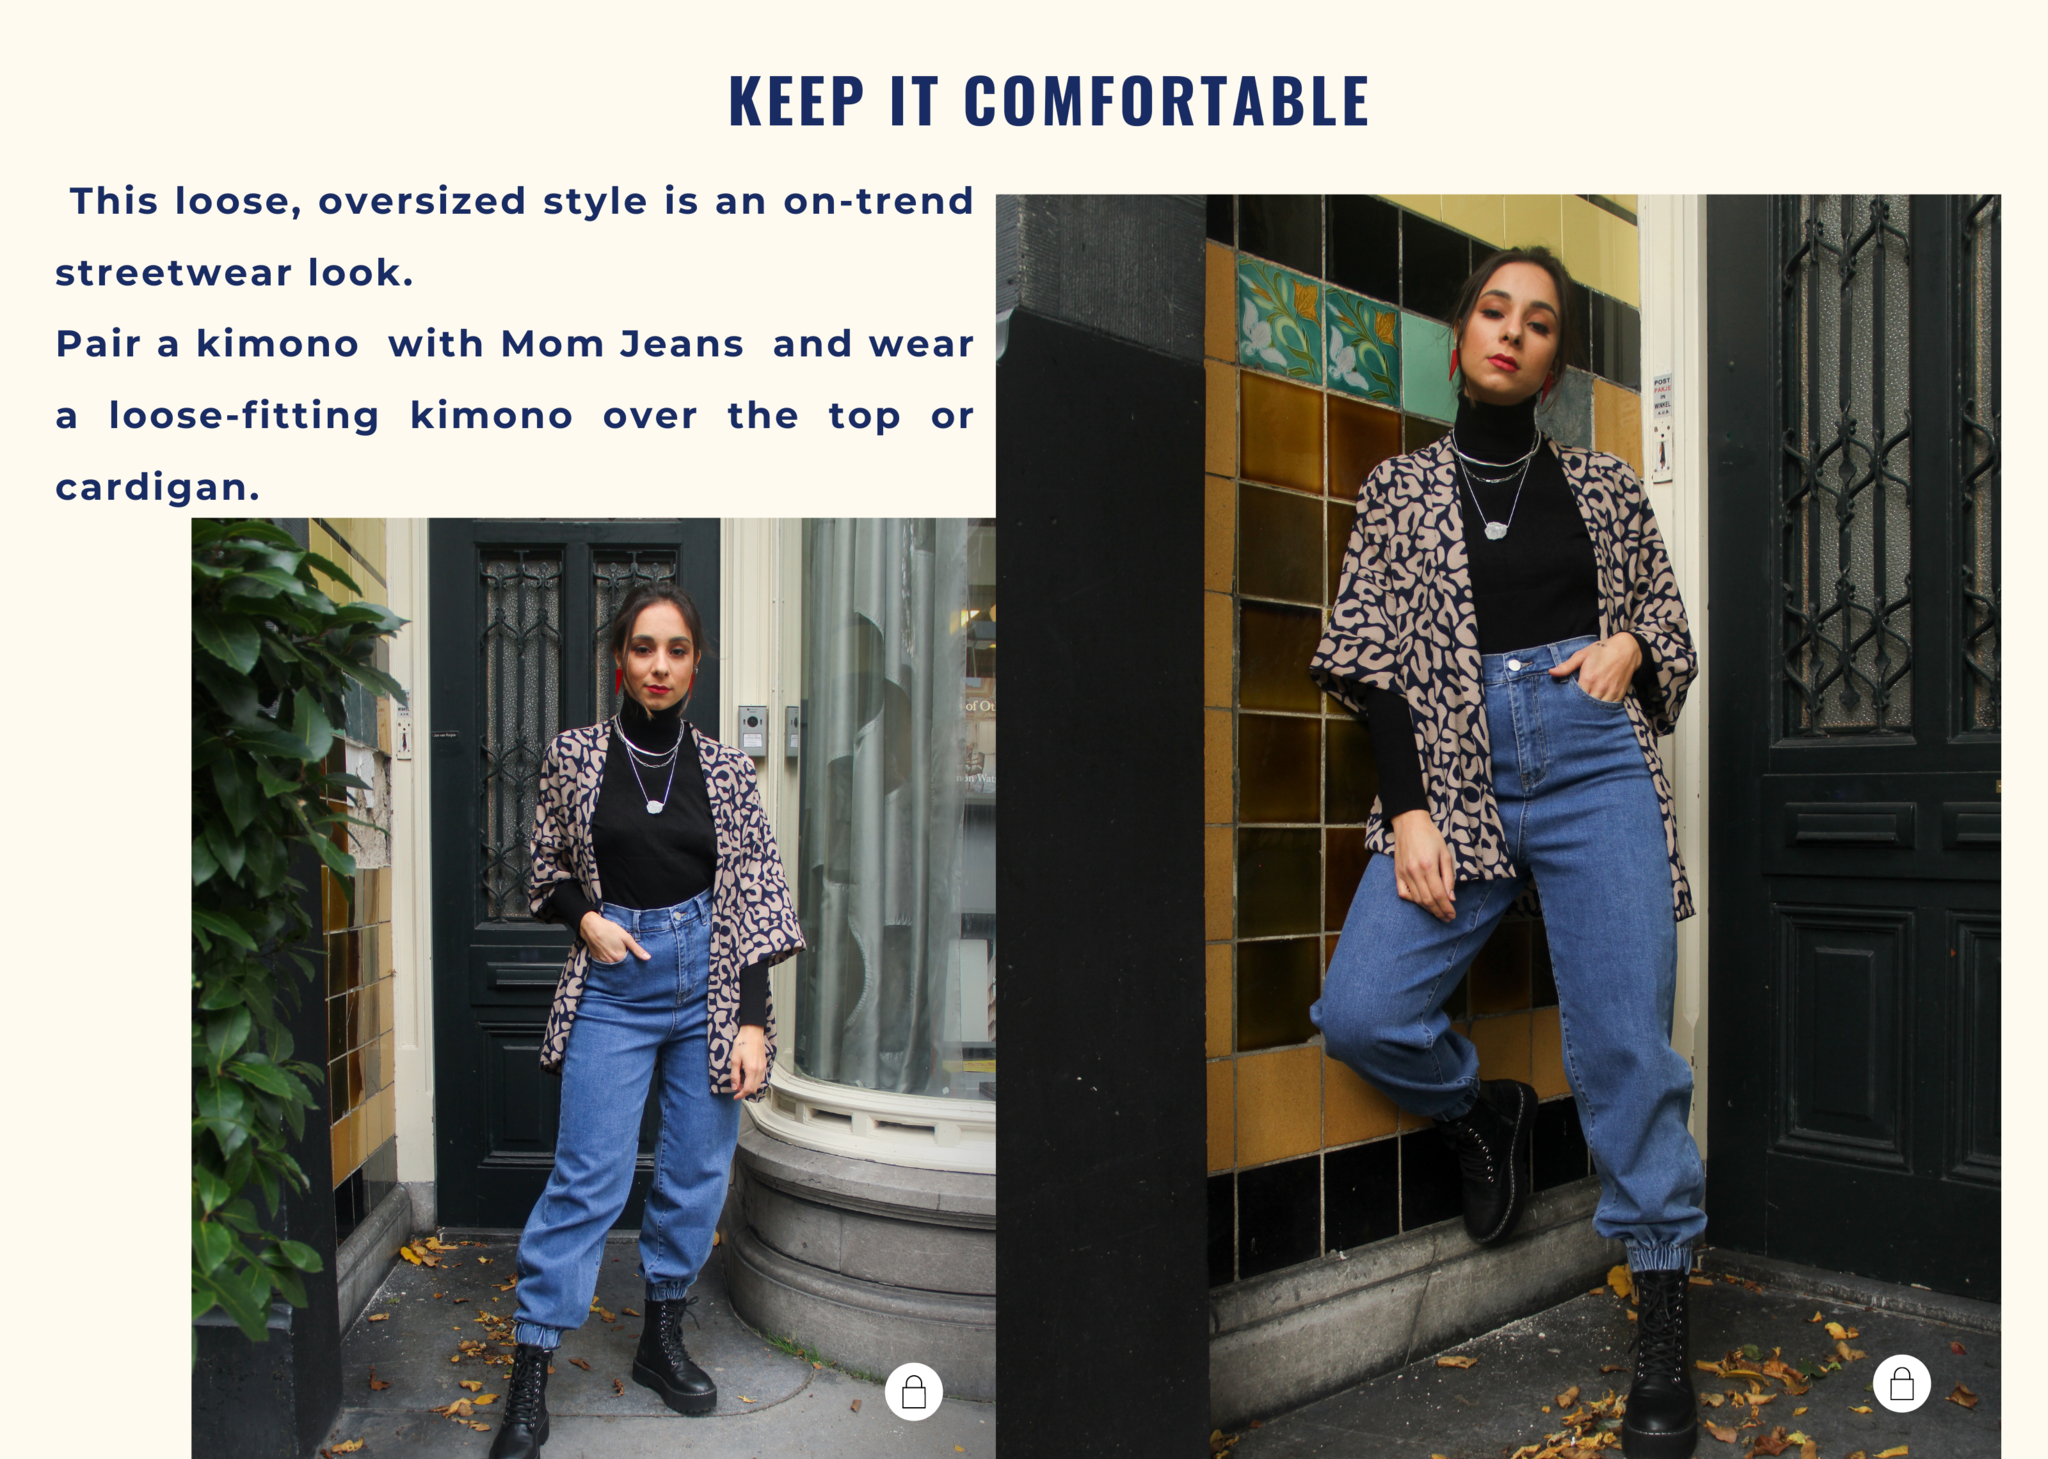 This loose, oversized style is an on-trend streetwear look. Opt for a loose fitting kimono jacket to match the loose pants. If you want to add a little shape to the outfit, simply do up the ties on the front of the kimono.